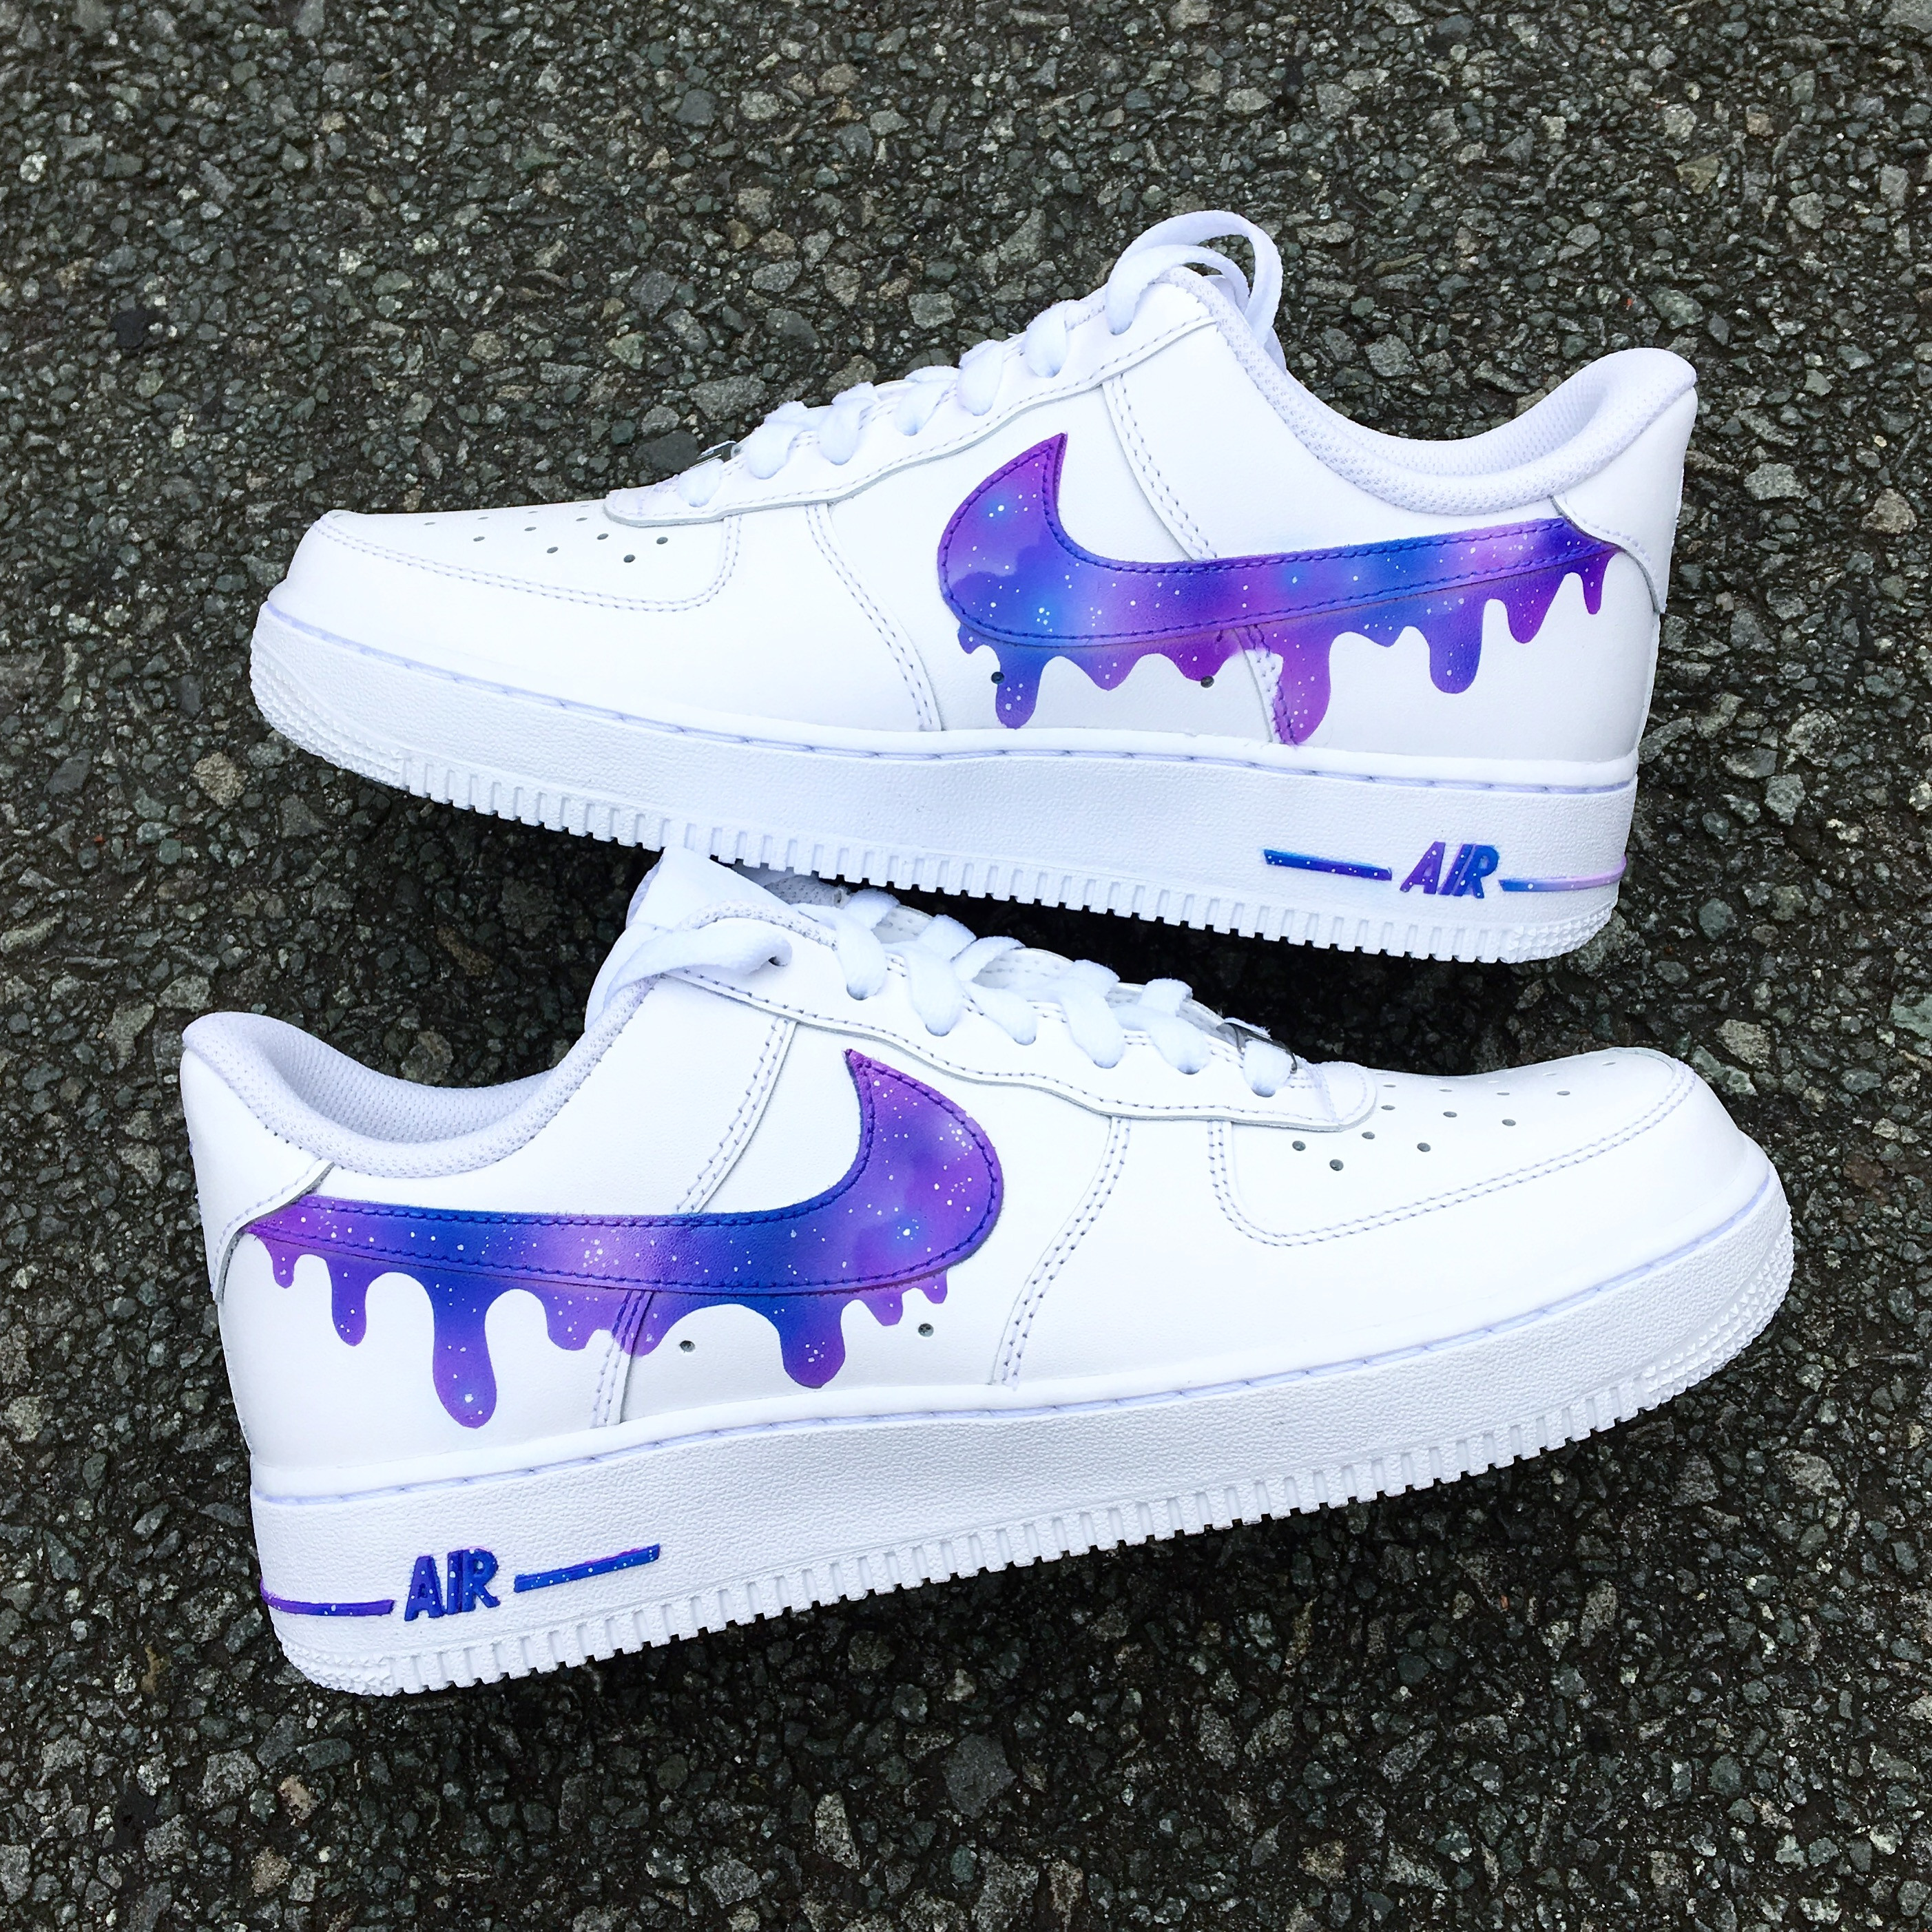 7f6ee1e4351af Galaxy drip swoosh Air Force 1